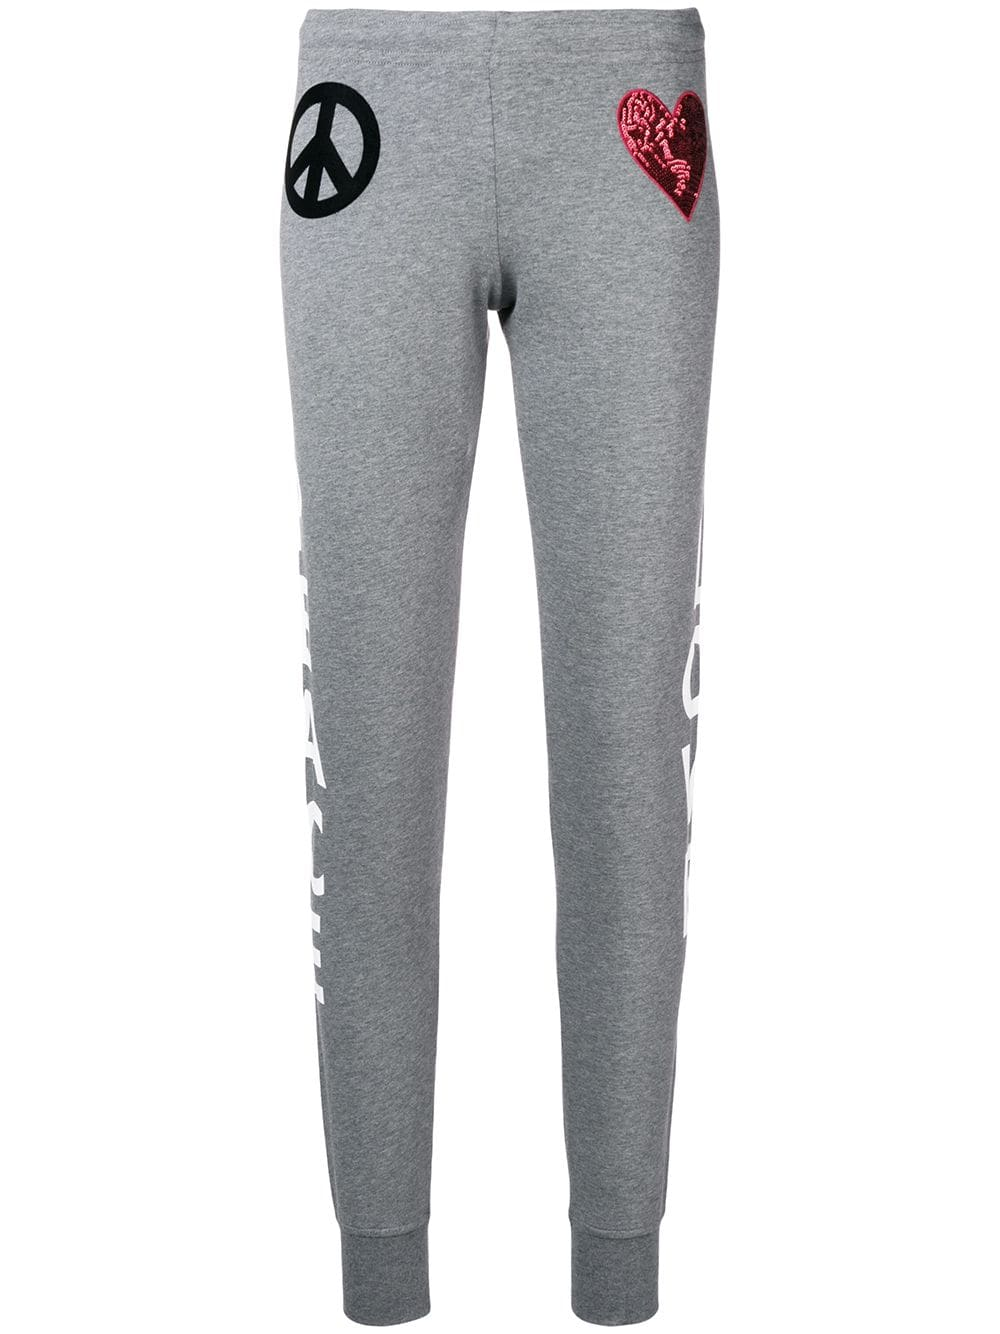 Love Moschino peace and love track pants - Grey - Glami.sk 56b6cb6749e